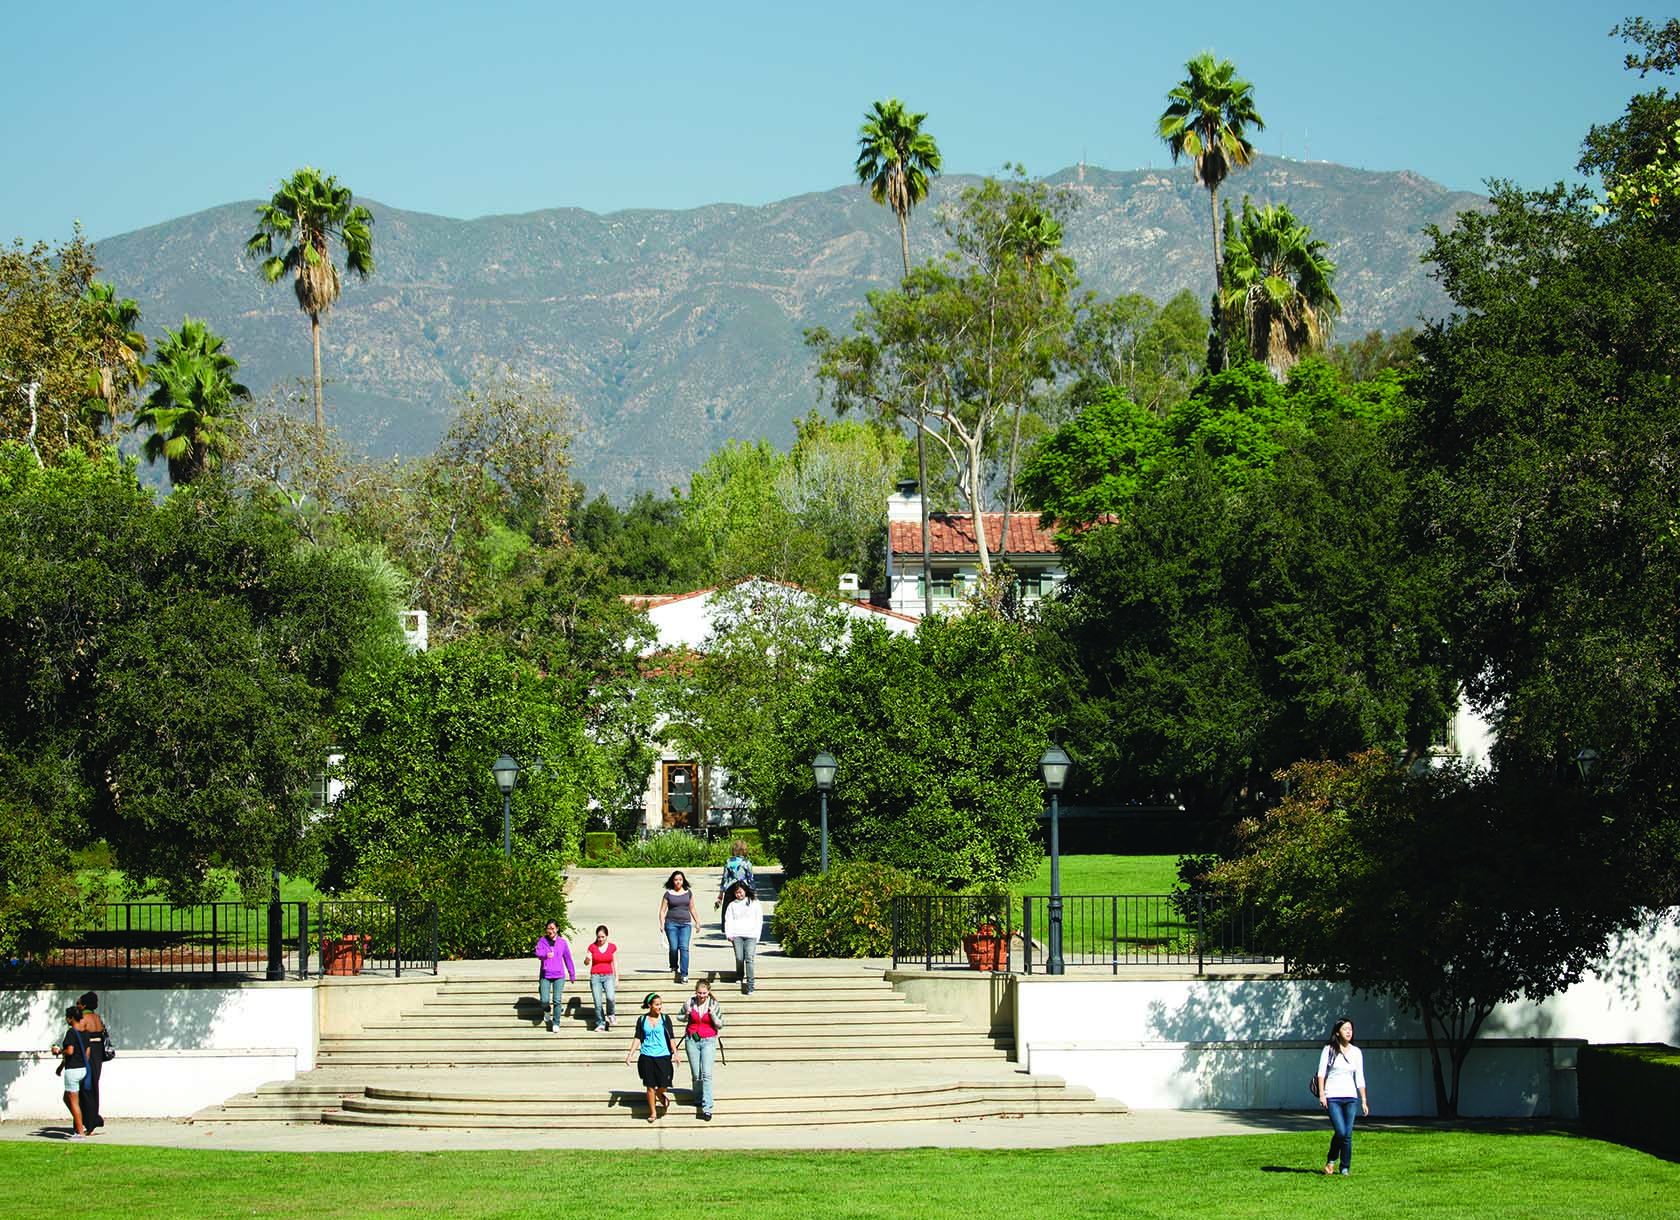 View of bowling green and wood steps with mountains in the background